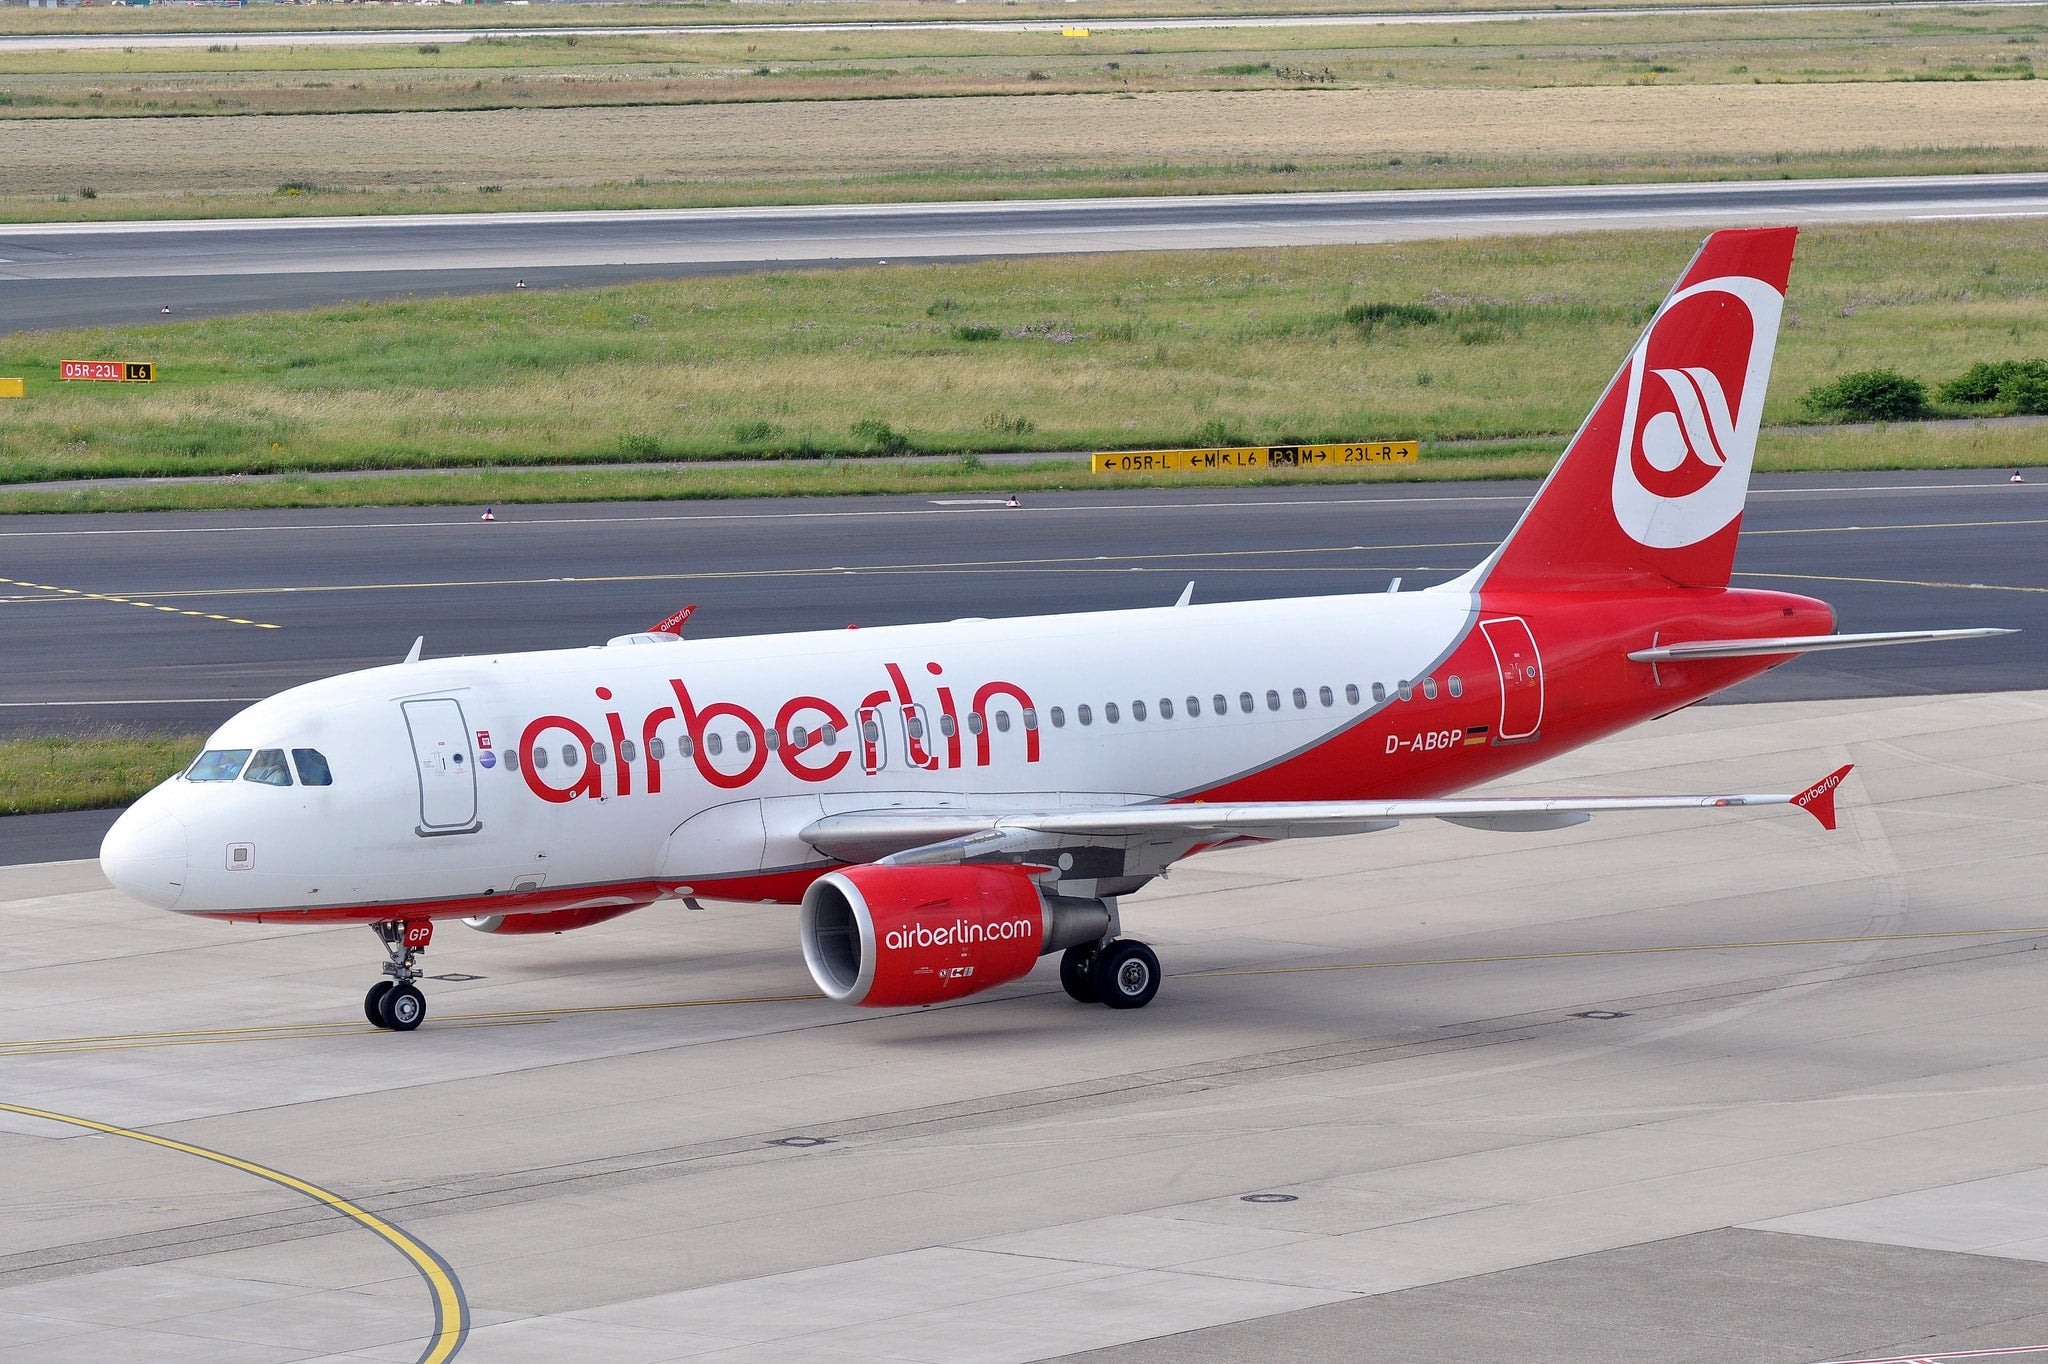 aereo air berlin check in online edreams blog di viaggi